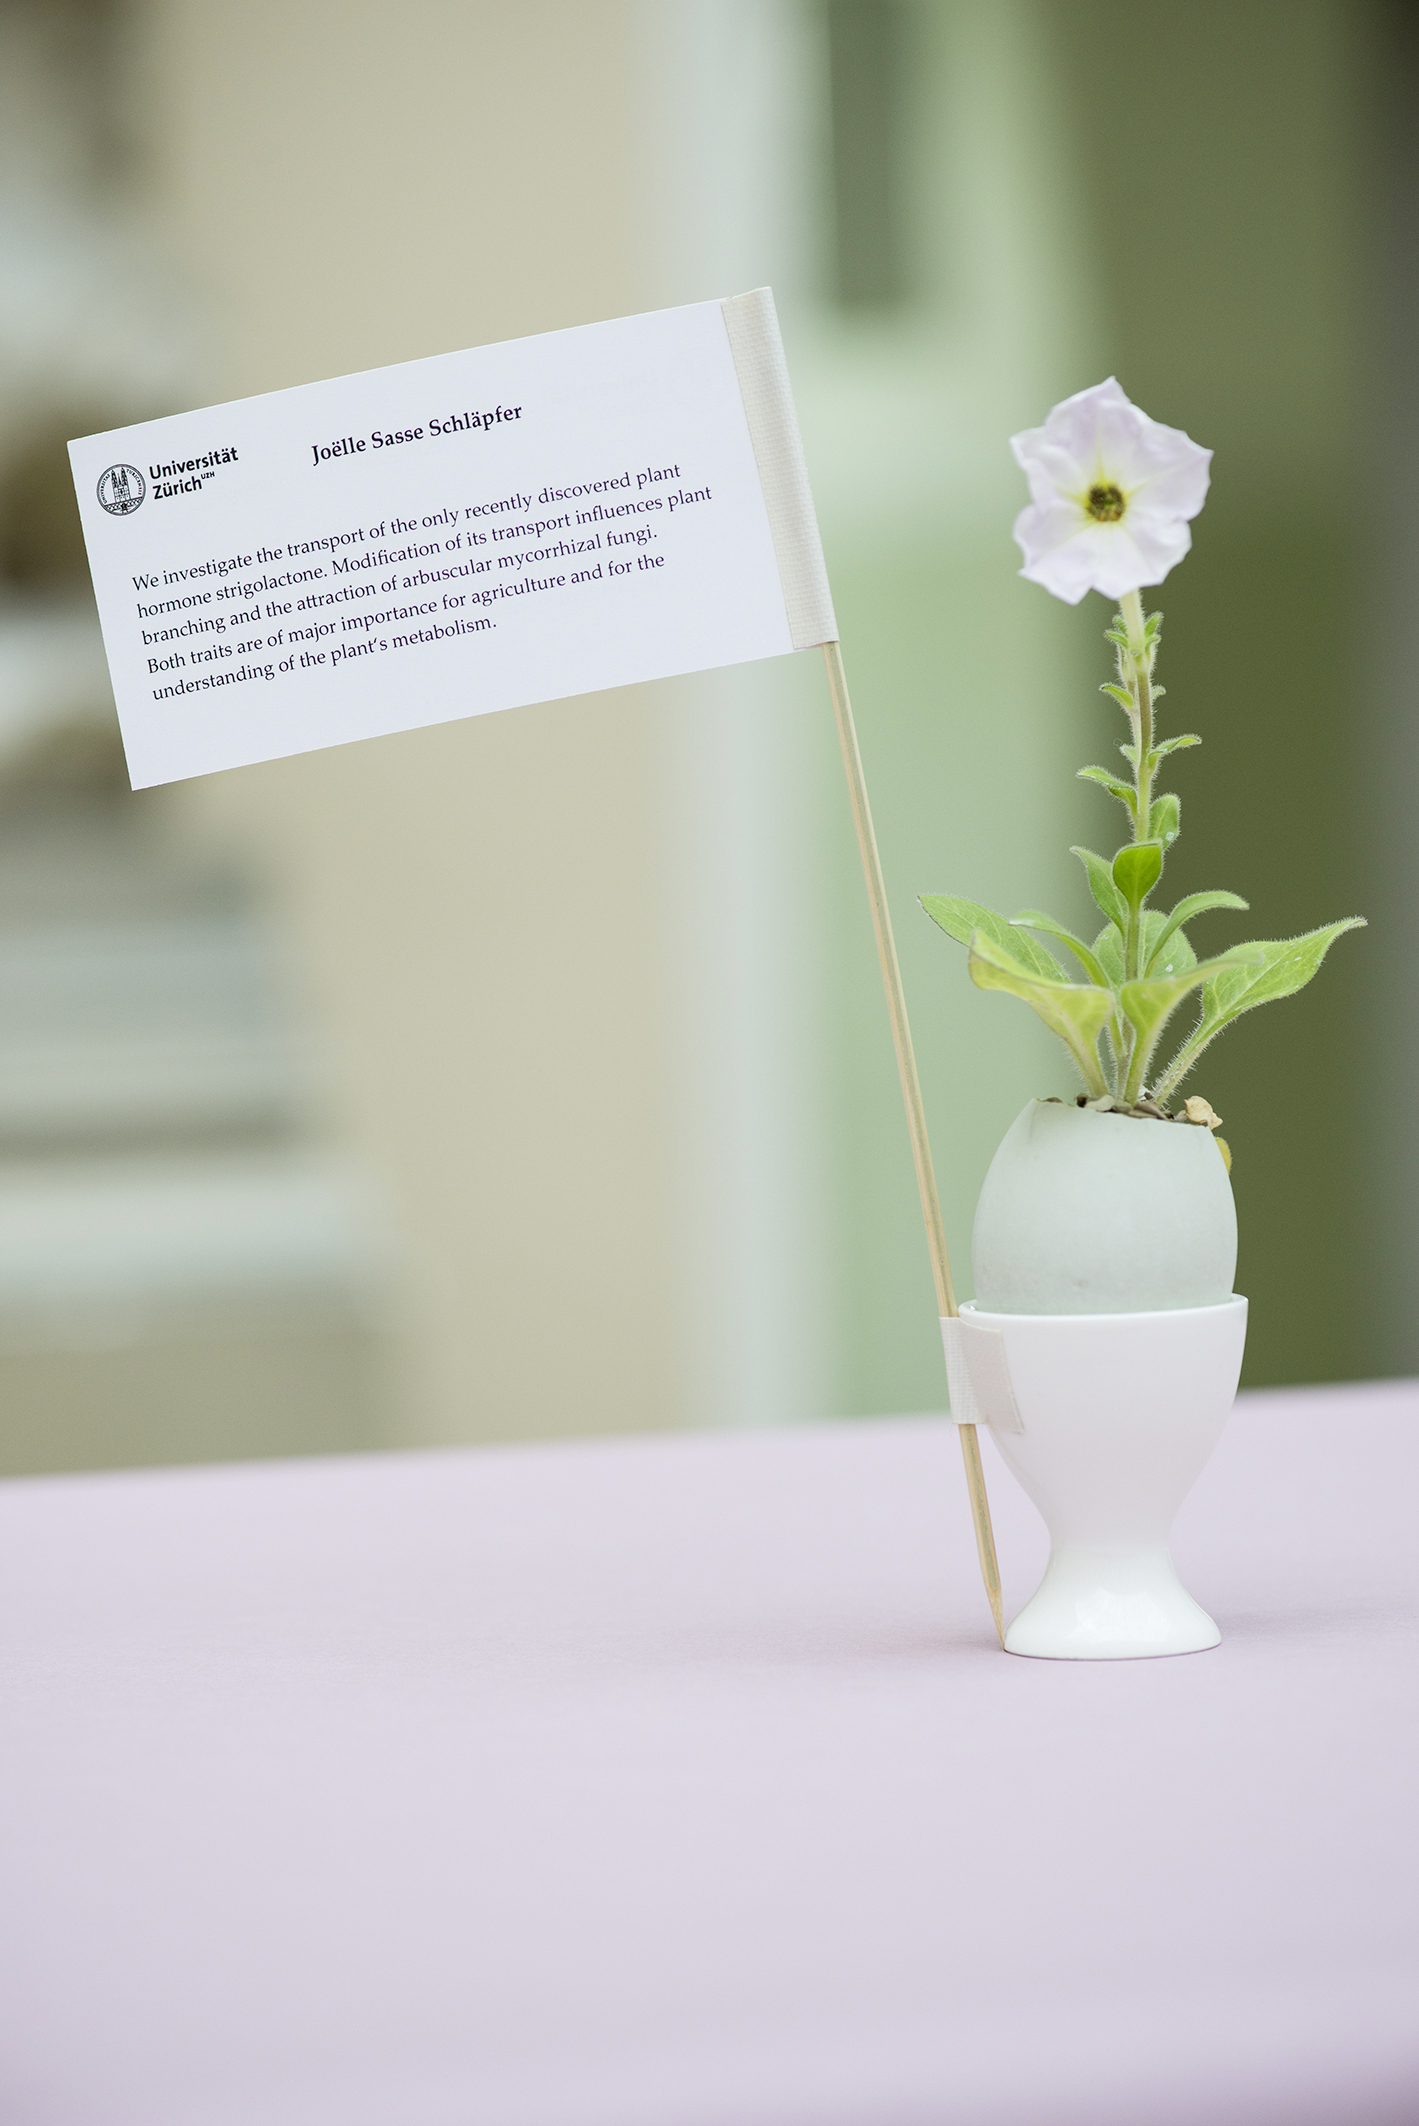 Joelle Sasse Schläpfer, Department of Plant and Microbial Biology: Using petunia (like the one in the picture) as a plant model, we investigate the transport of the only recently discovered plant hormone strigolactone. Modification of its transport influences plant branching and the attraction of arbuscular mycorrhizal Fungi. Both traits are of major importance for agriculture and for the understanding of the plant's metabolism. Foto: Brüderli